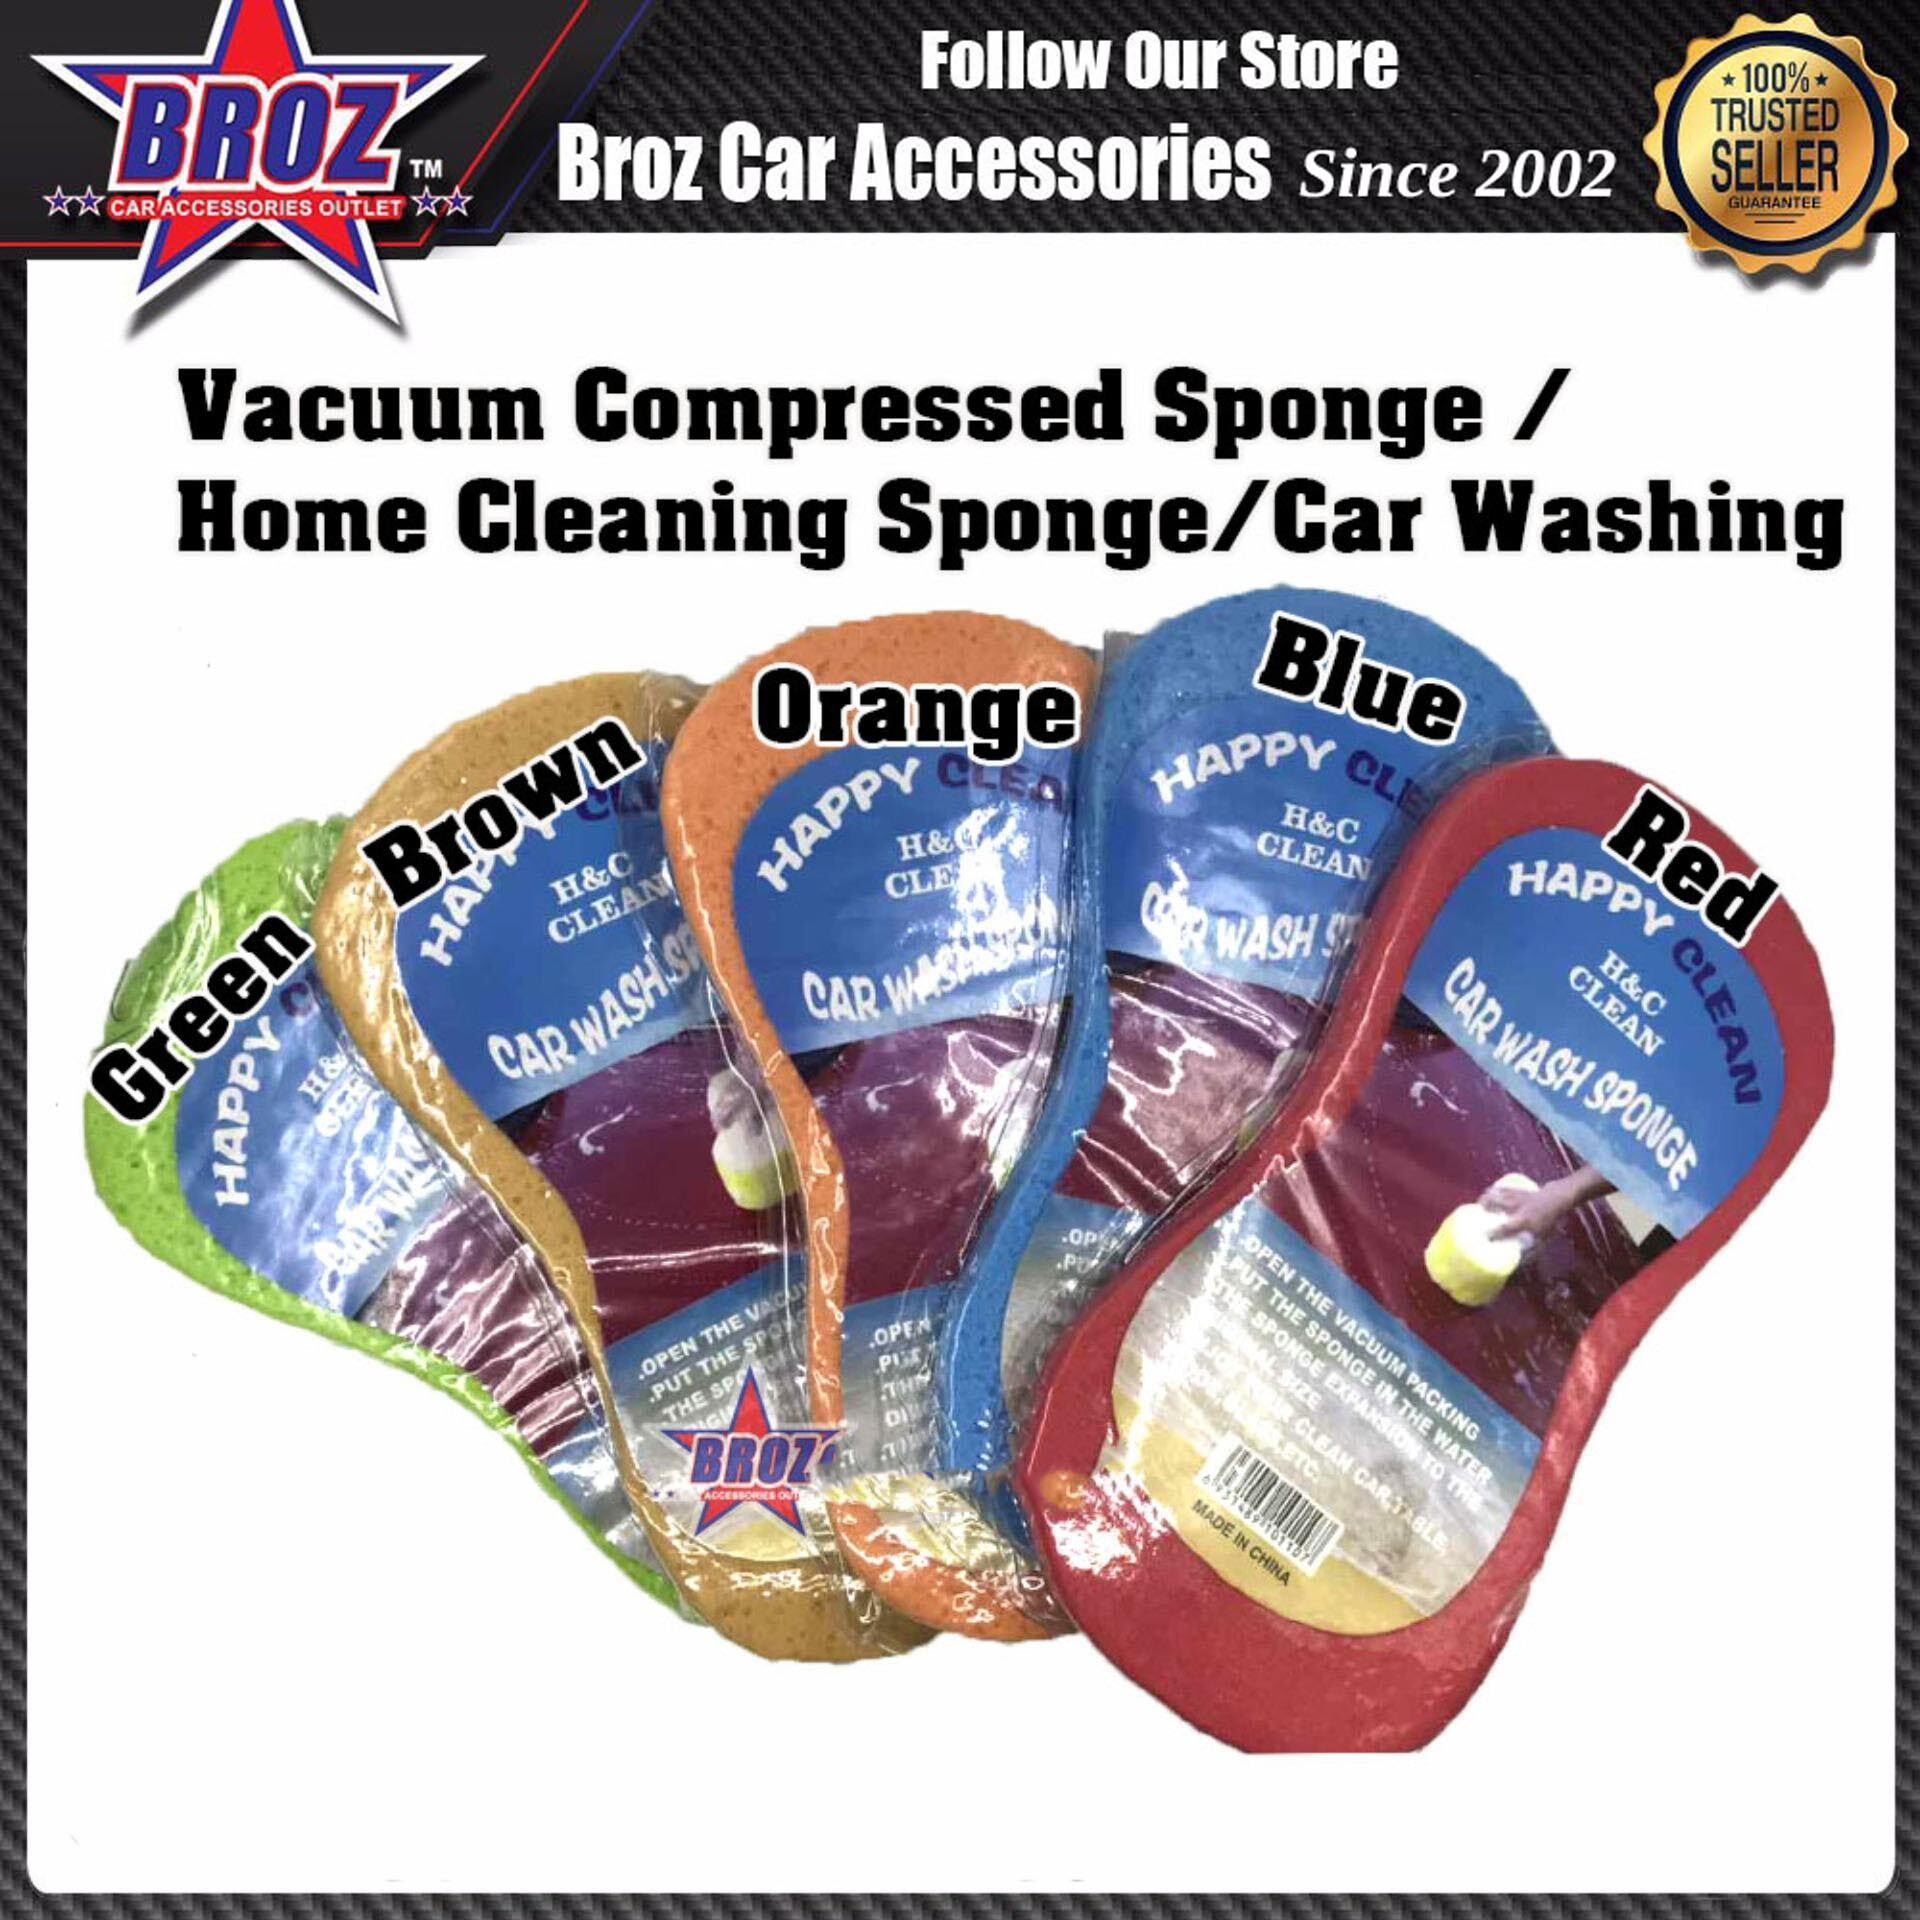 3 x Vaccum Compressed Sponge/Home Cleaning Sponge/Car Washing (Red)